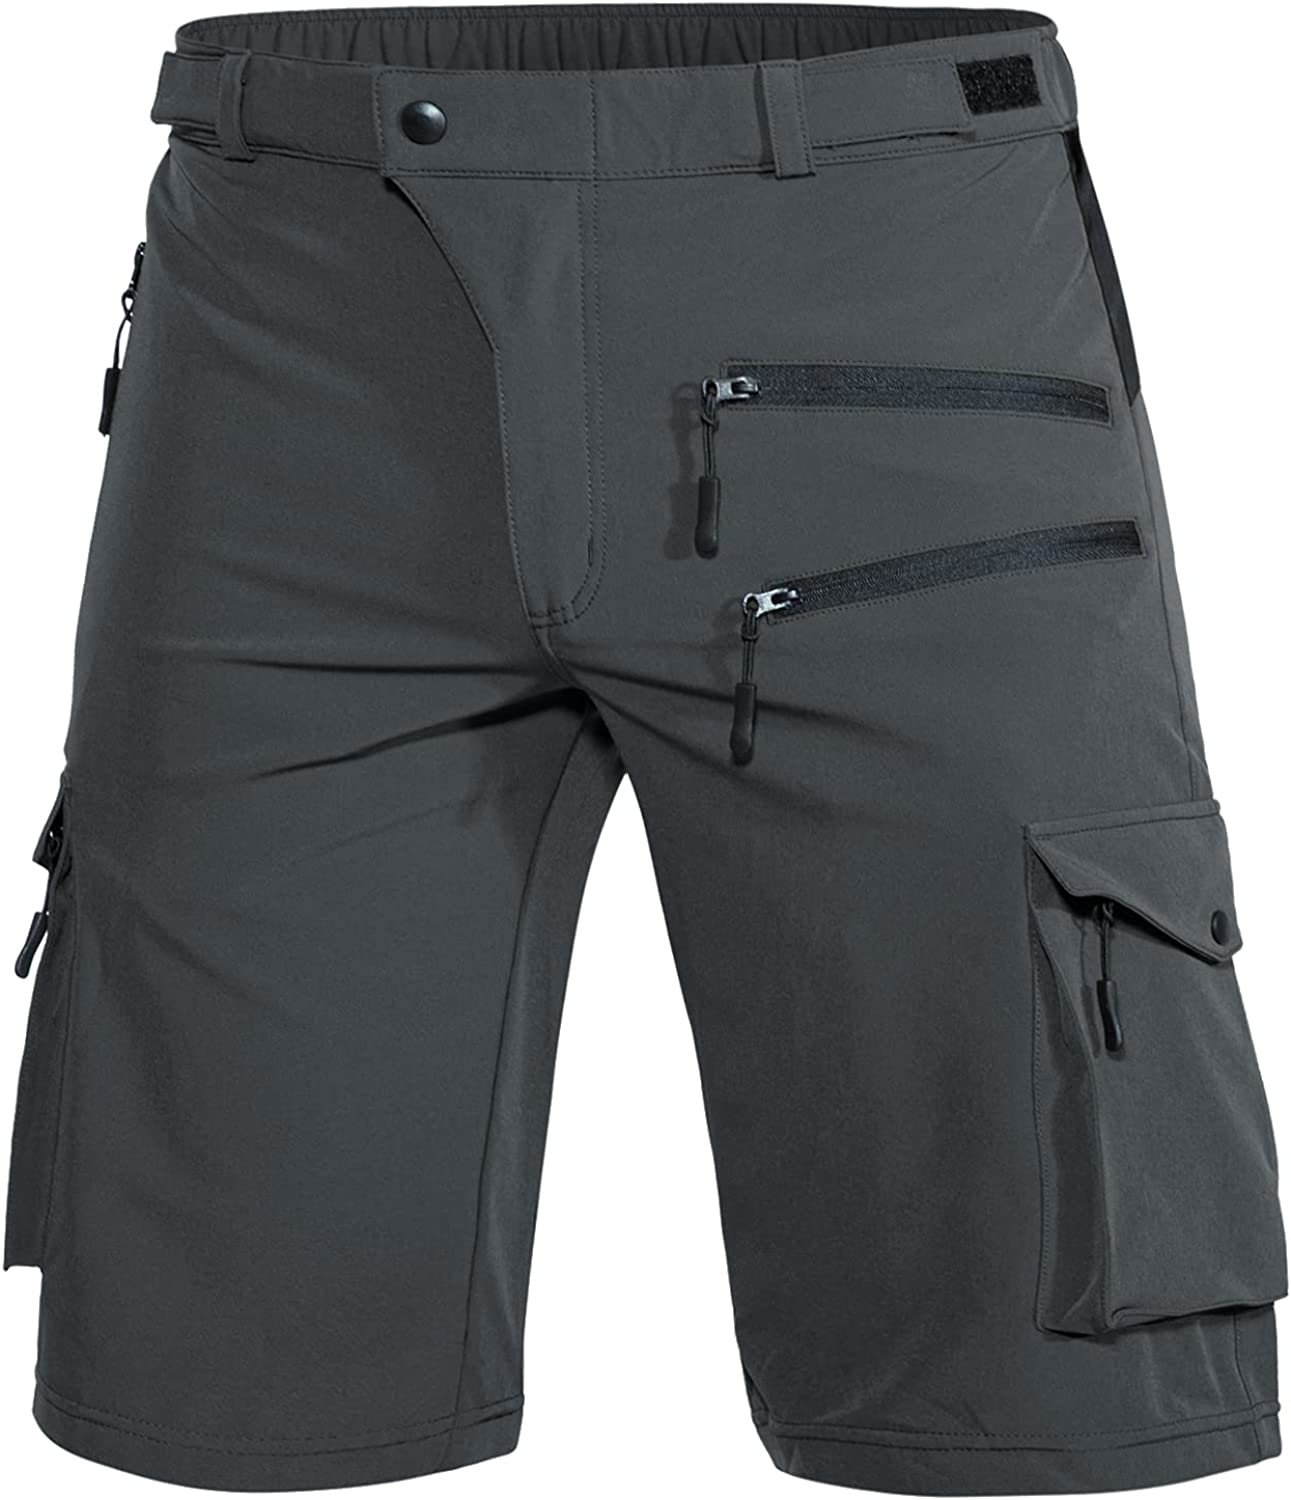 Wespornow Men's-Hiking-Shorts Directly managed store Tactical Rare Lightweight-Quick- Shorts